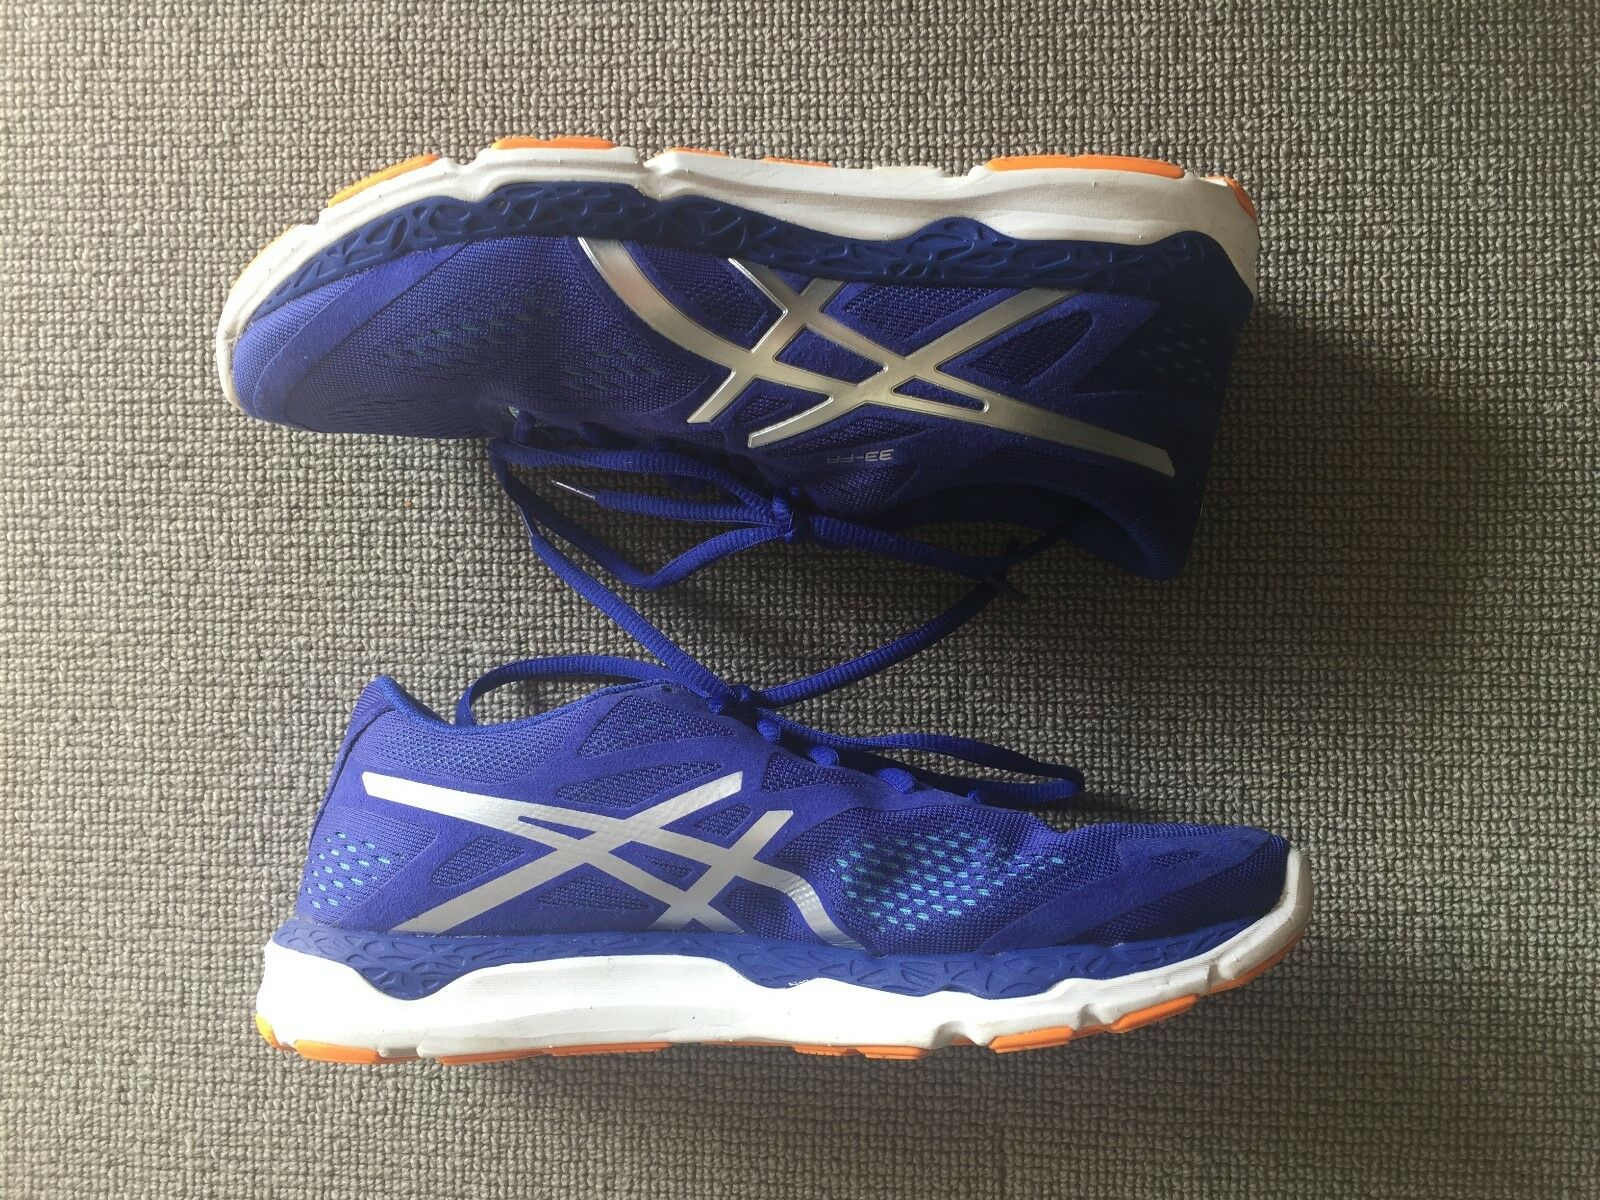 Asics Taille Fluid Axis 33-FR Taille Asics Euro 40, US 8.5 Neon Bleu Trainer 9765fa